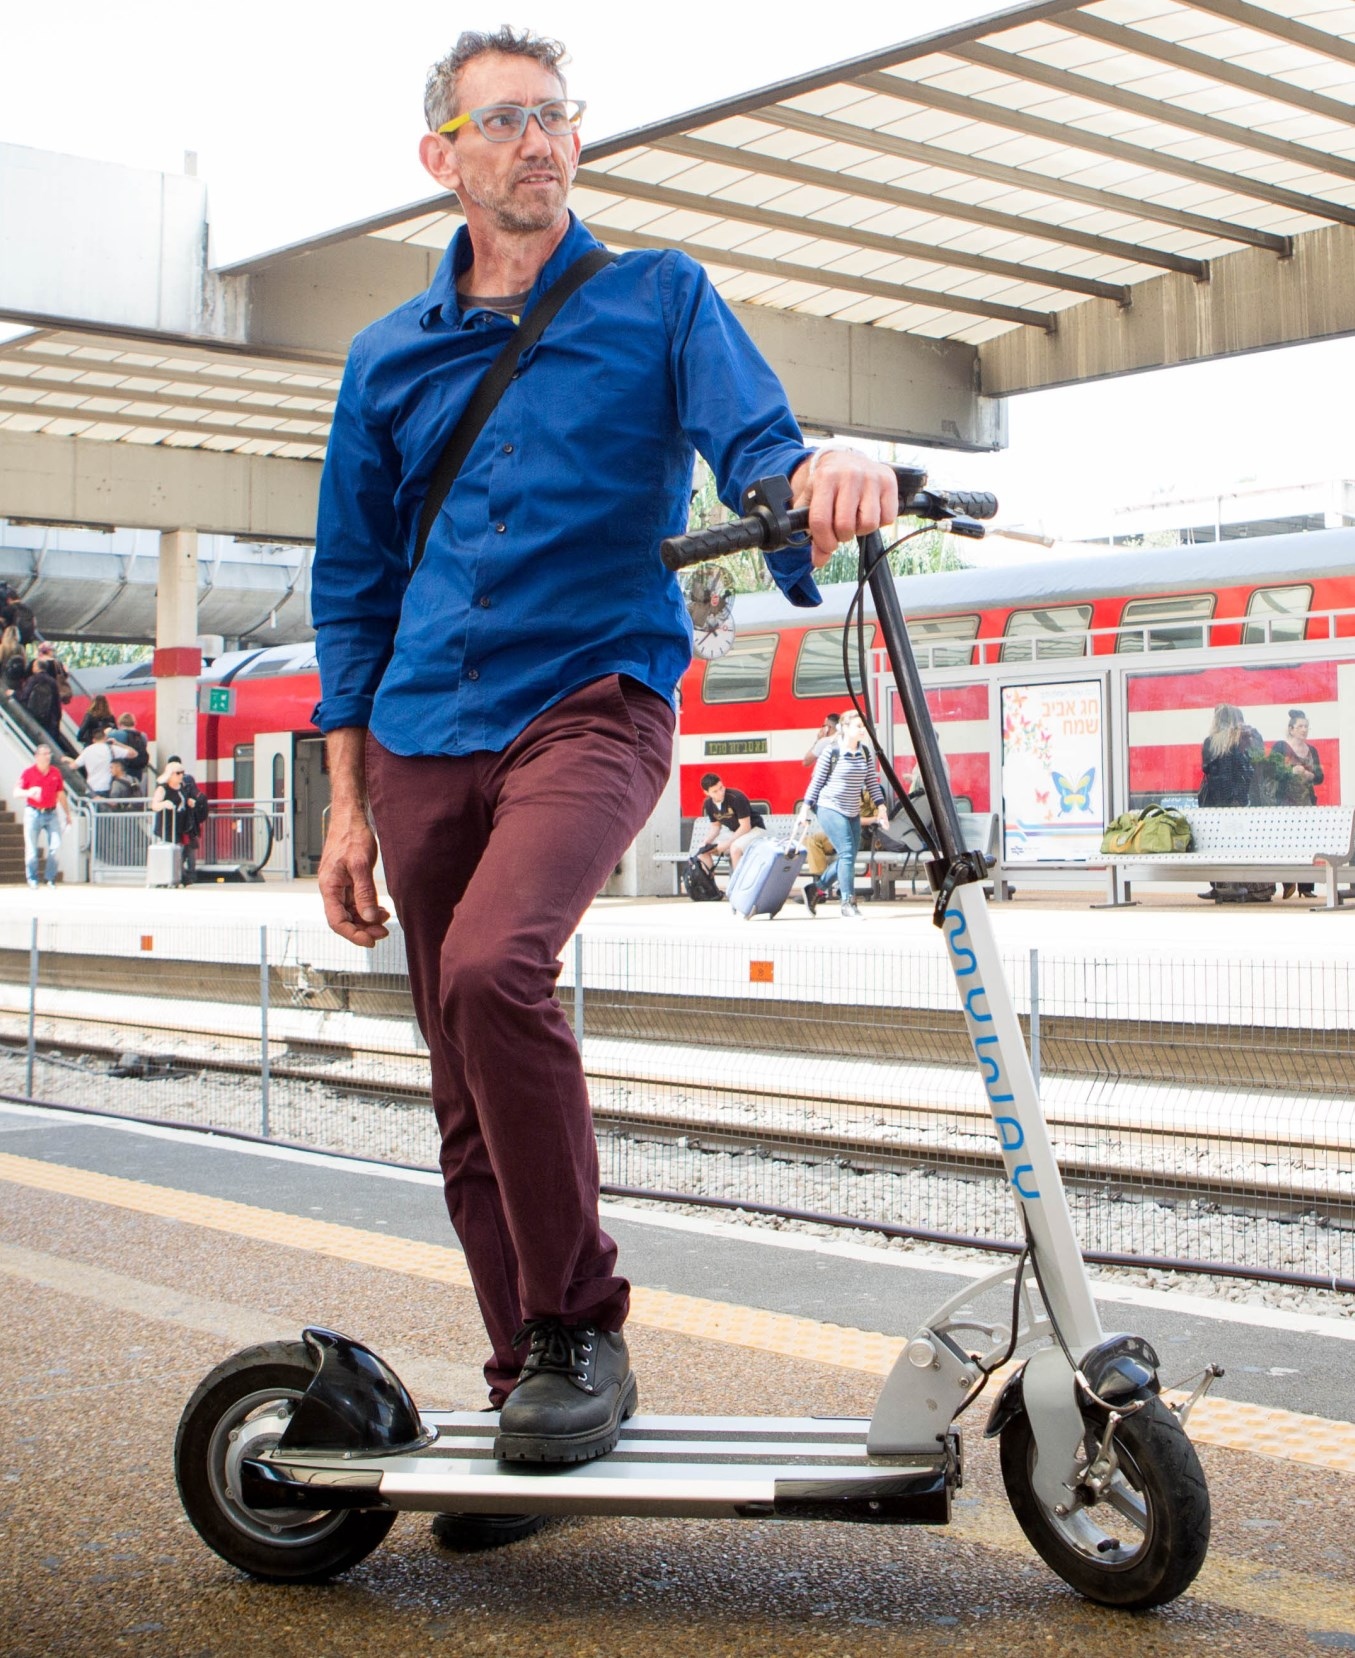 Inokim designer Nimrod Sapir with one of his scooters at an Israeli railroad station. Photo by Shlomi Yosef